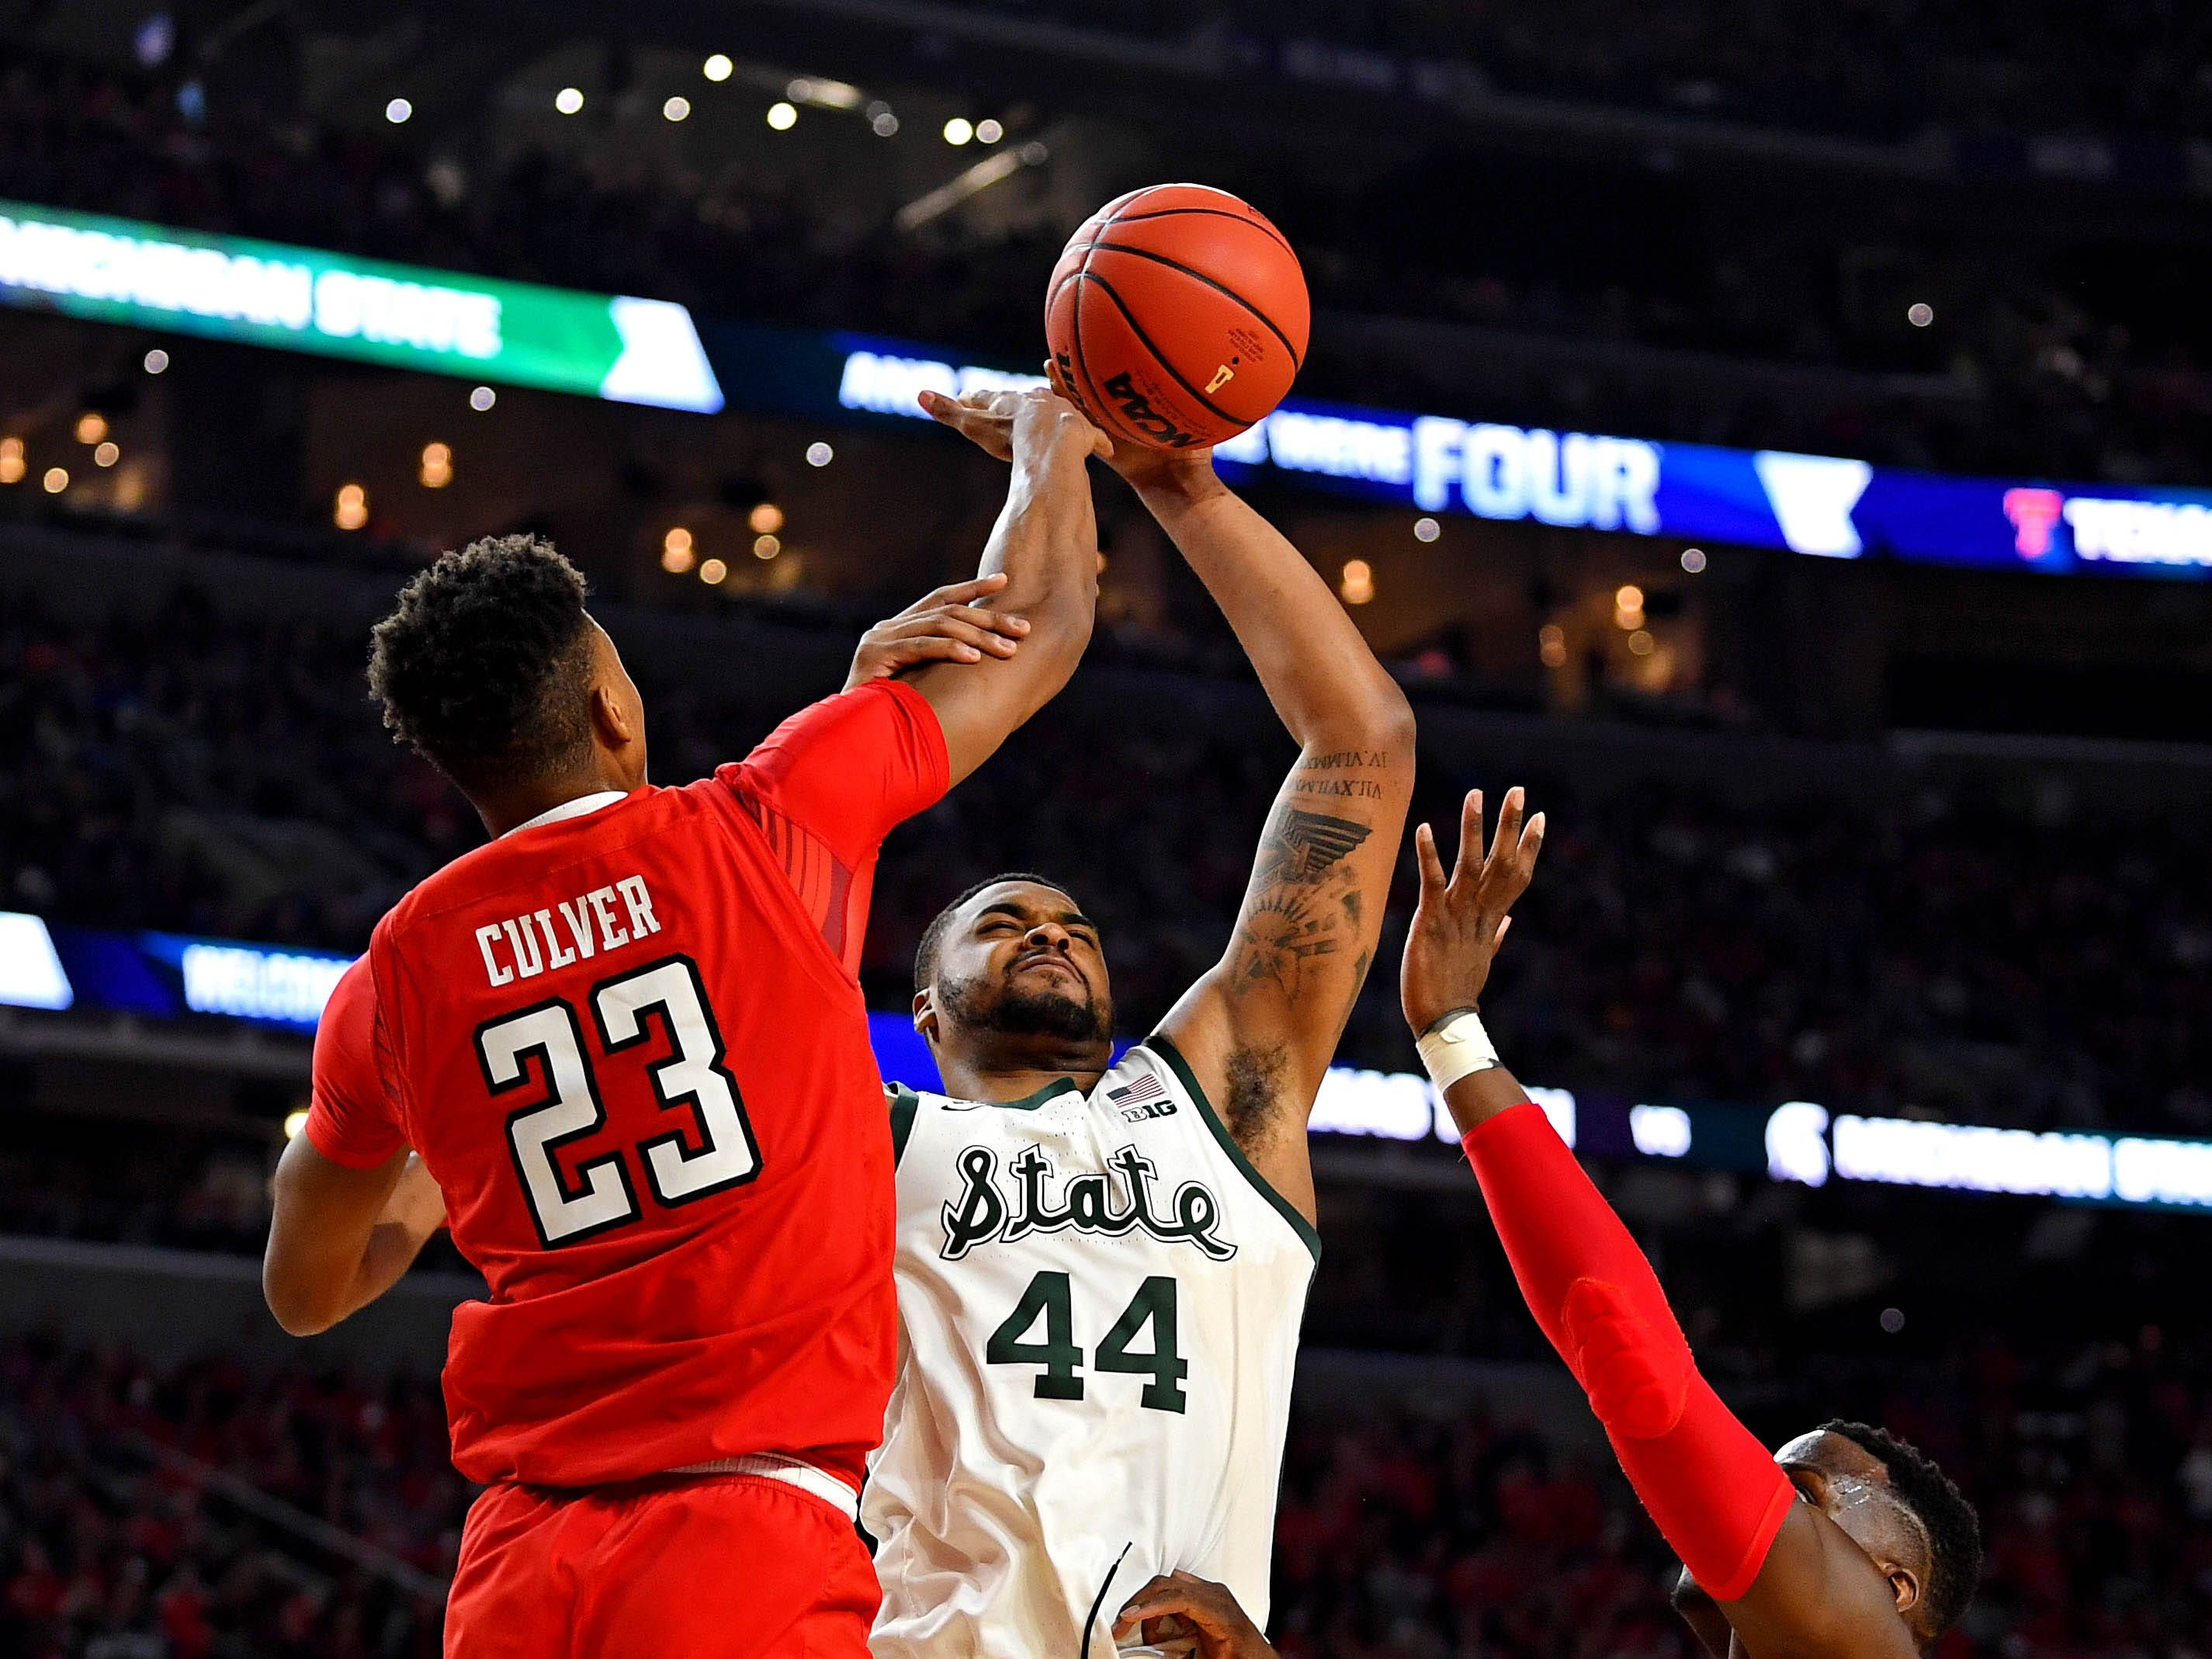 Apr 6, 2019; Minneapolis, MN, USA; Michigan State Spartans forward Nick Ward (44) shoots the ball against Texas Tech Red Raiders guard Jarrett Culver (23) during the second half in the semifinals of the 2019 men's Final Four at US Bank Stadium. Mandatory Credit: Bob Donnan-USA TODAY Sports